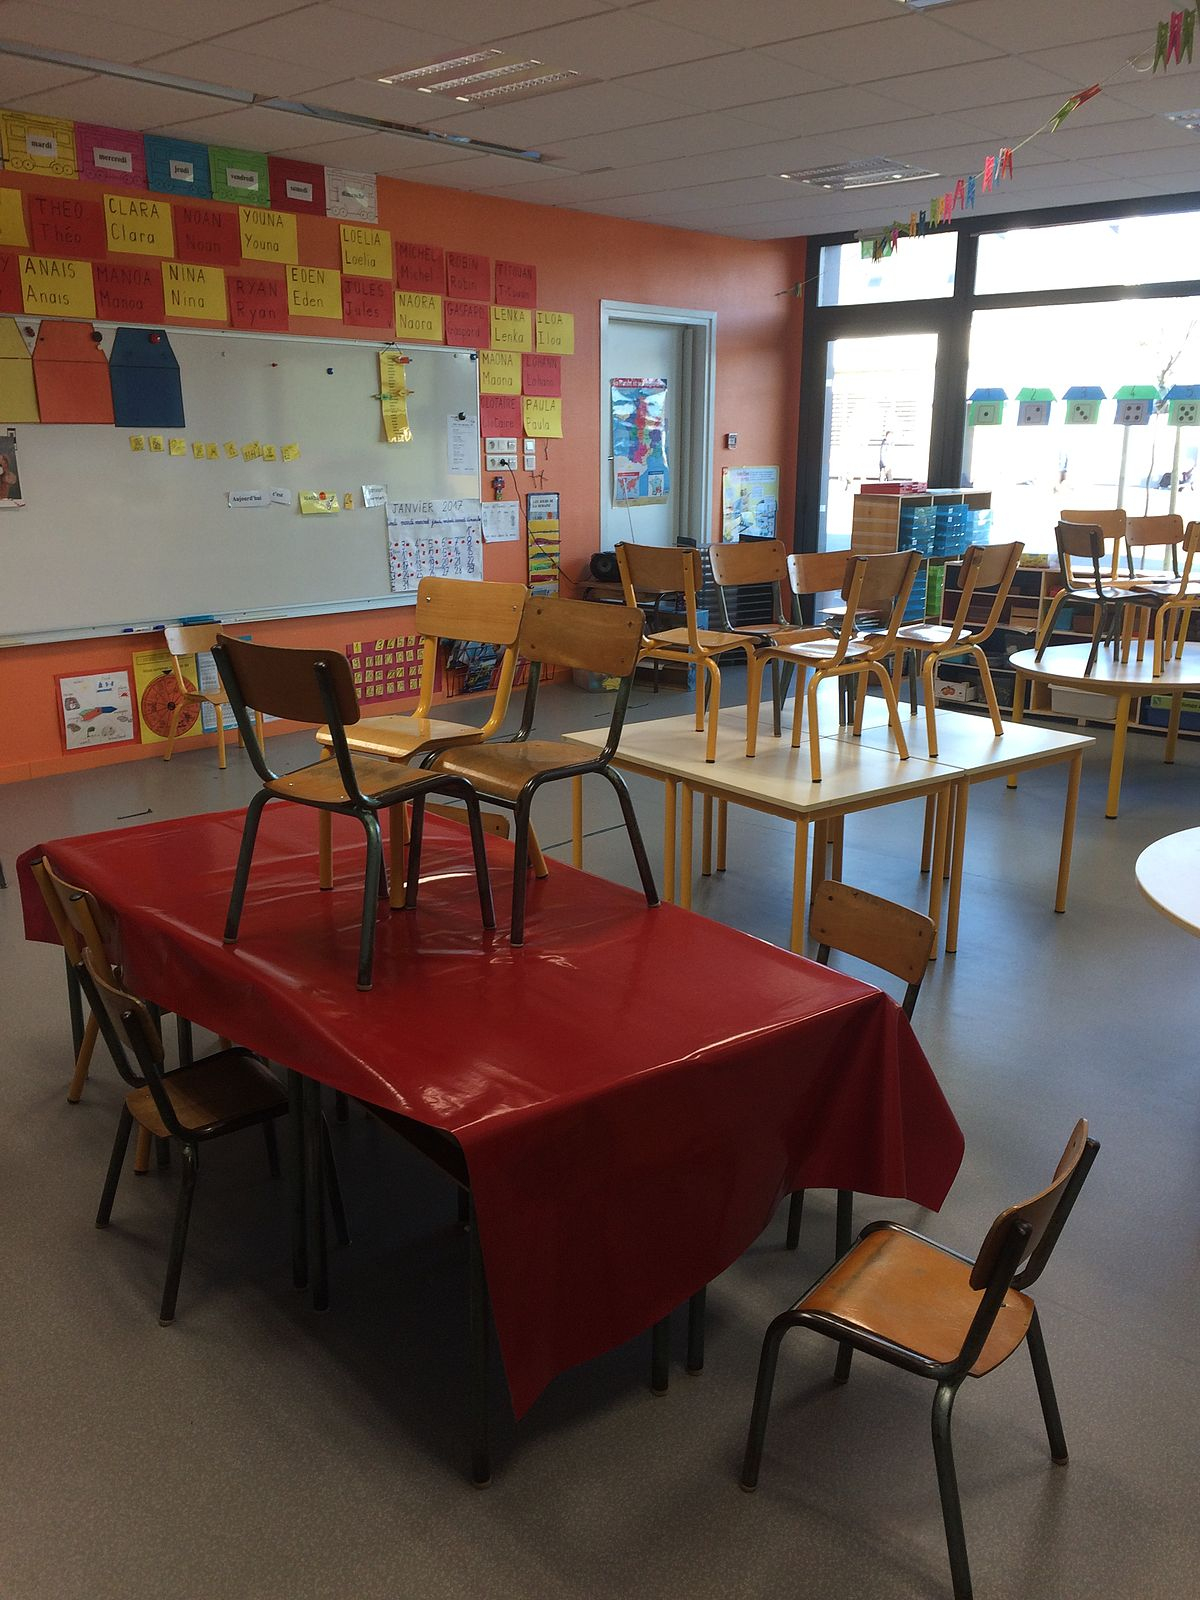 Moyenne Section — Wikipédia tout Moyen Section Maternelle Exercice